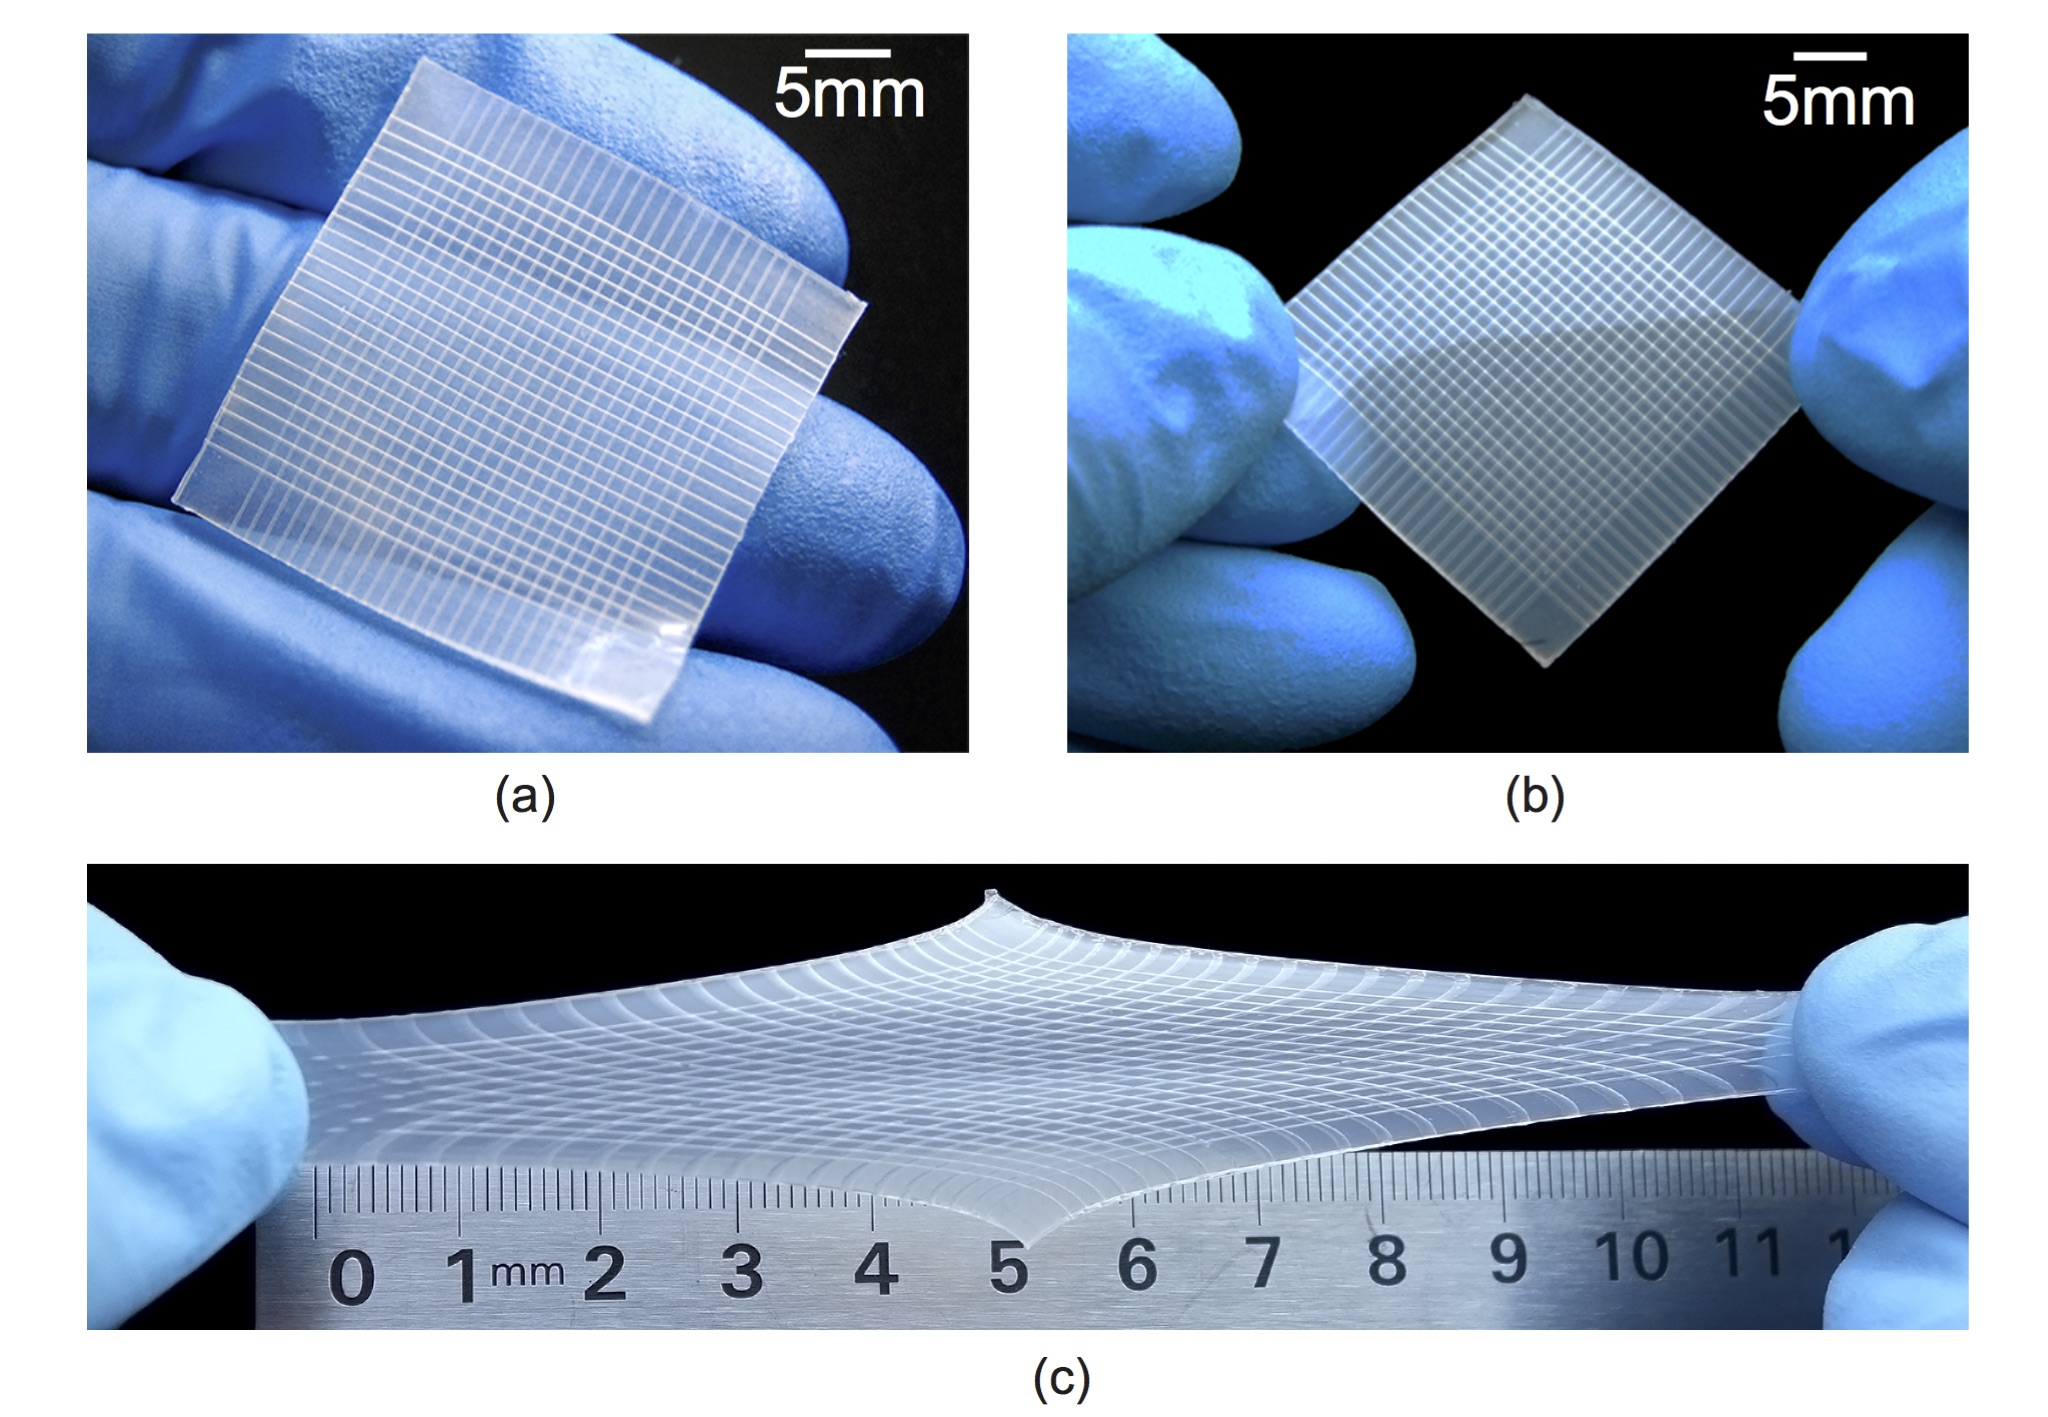 Stretchable tactile imaging sensors